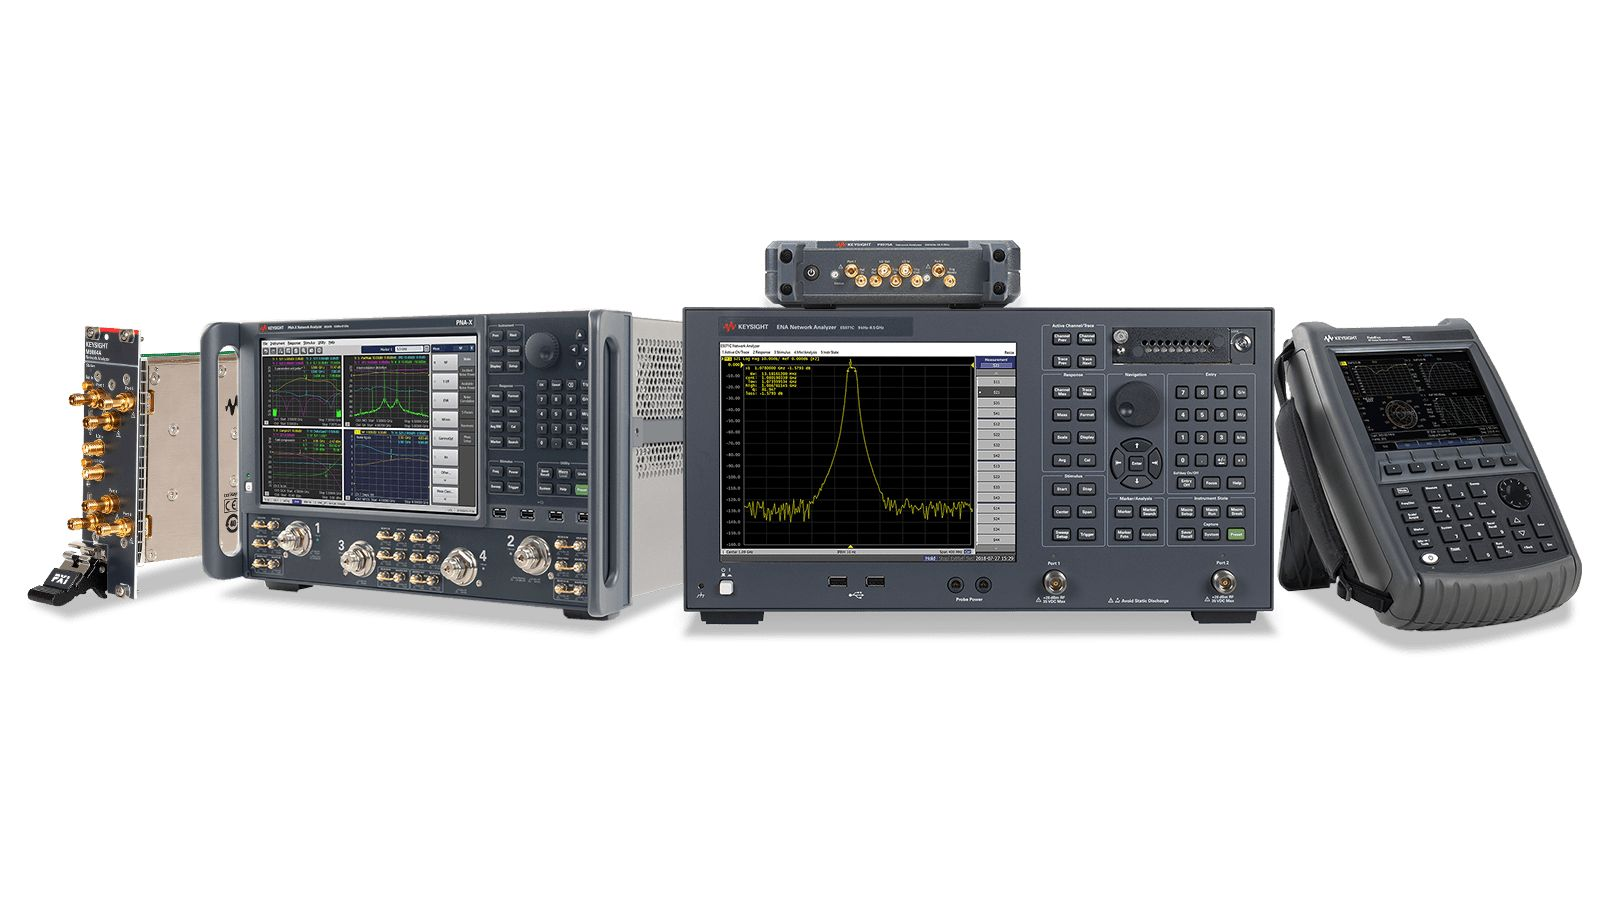 keysight network analyzer image